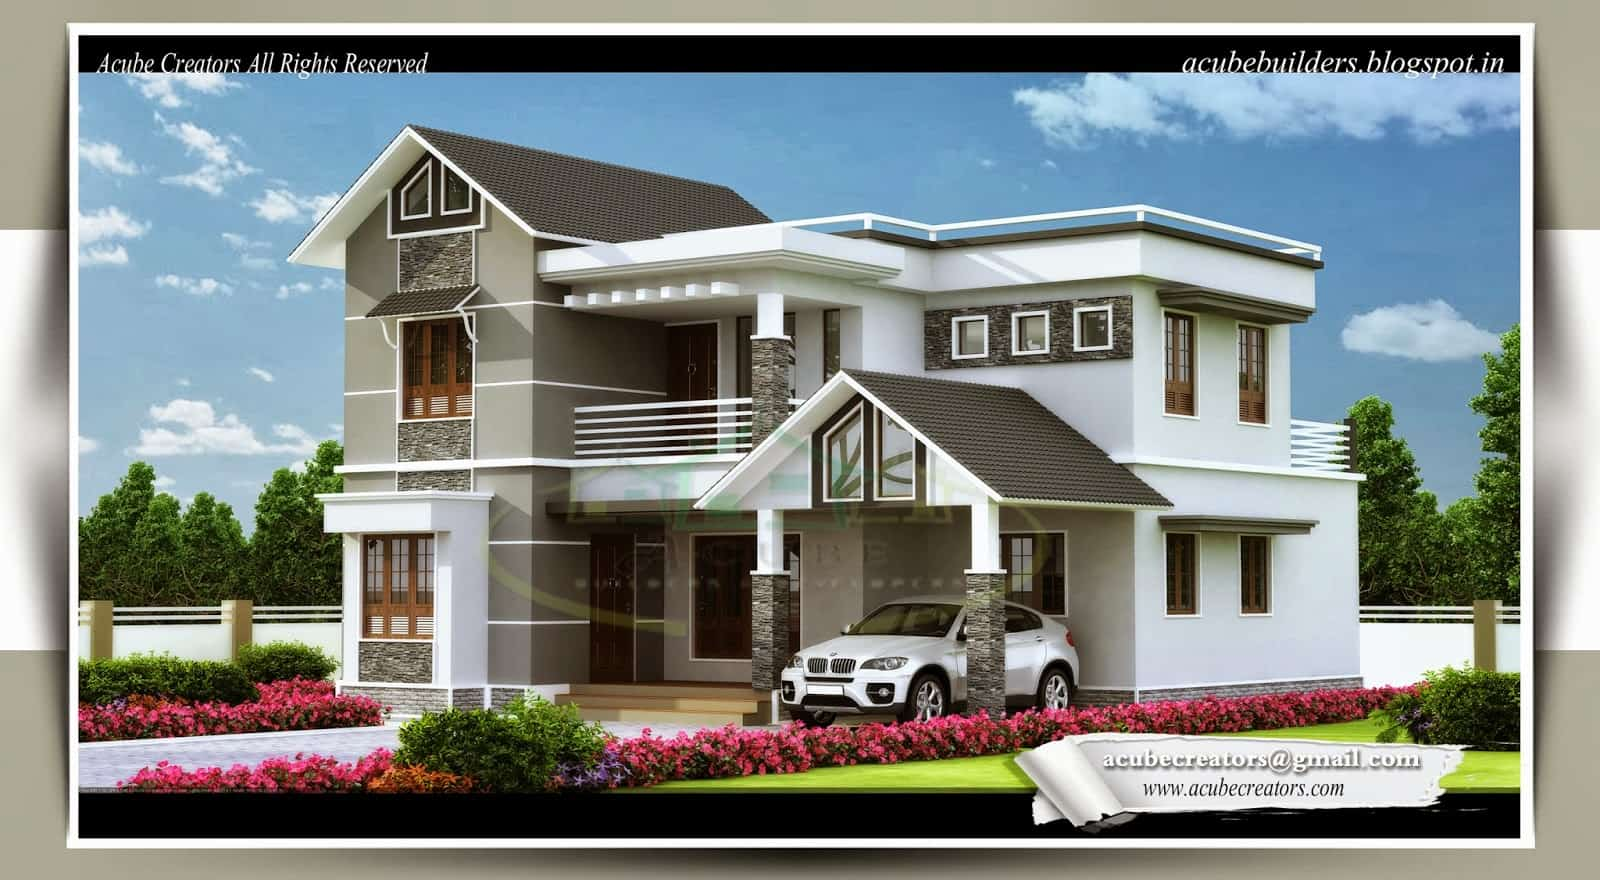 Kerala home design photos Home design house plans